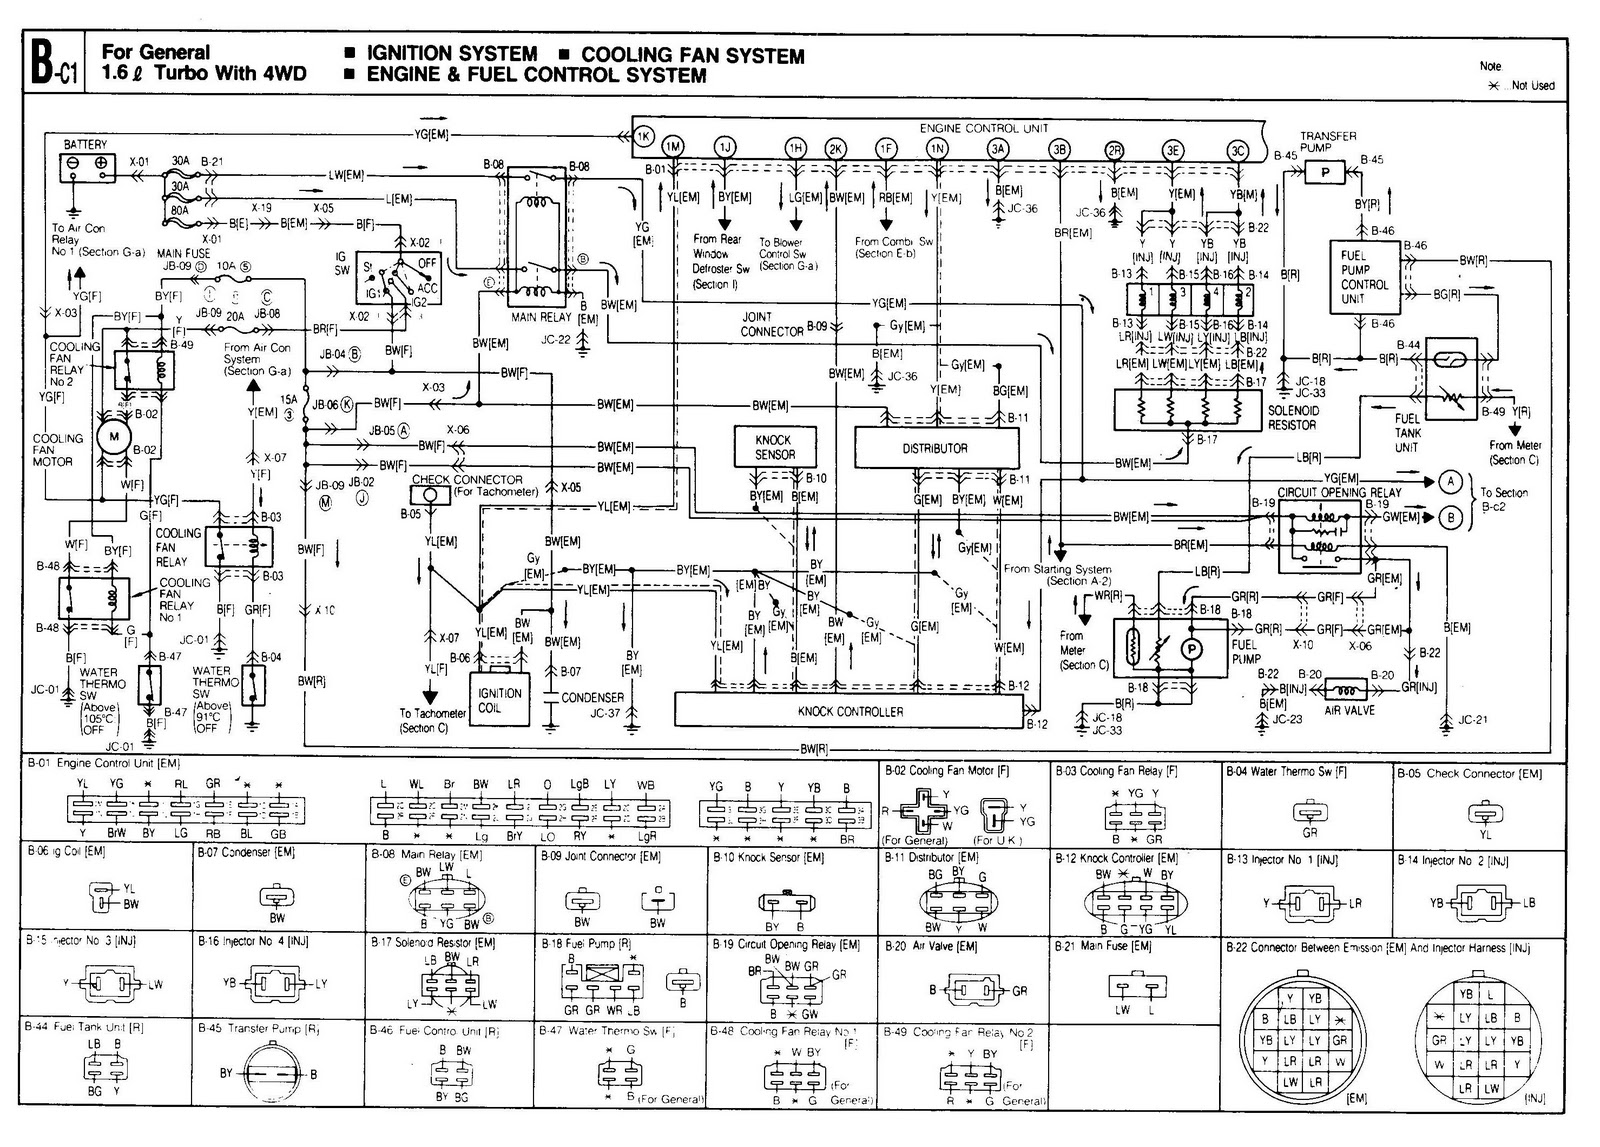 7 3 Idm Harness Diagram besides Honda Xl100 Motorcycle  plete Wiring likewise Ford Taurus Fuse Box Diagram Image Details Wiring moreover Ford Mustang Voltage Regulator Location also 7nhd5 Need Wireing Diagram Wiper Motor Switch. on 2002 ford f650 wiring diagram